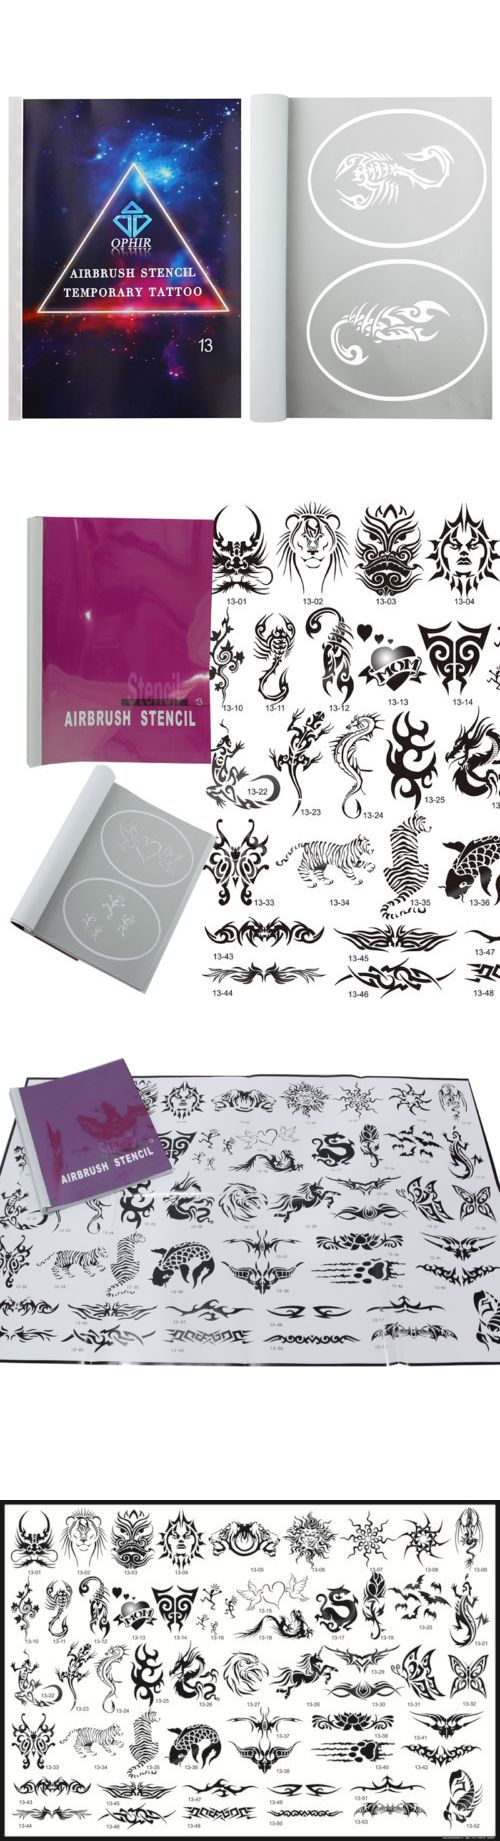 Stencils and Accessories: Ophir 52 Patterns Airbrush Temporary Tattoo Stencils Set For Airbrushing Art Set BUY IT NOW ONLY: $35.99